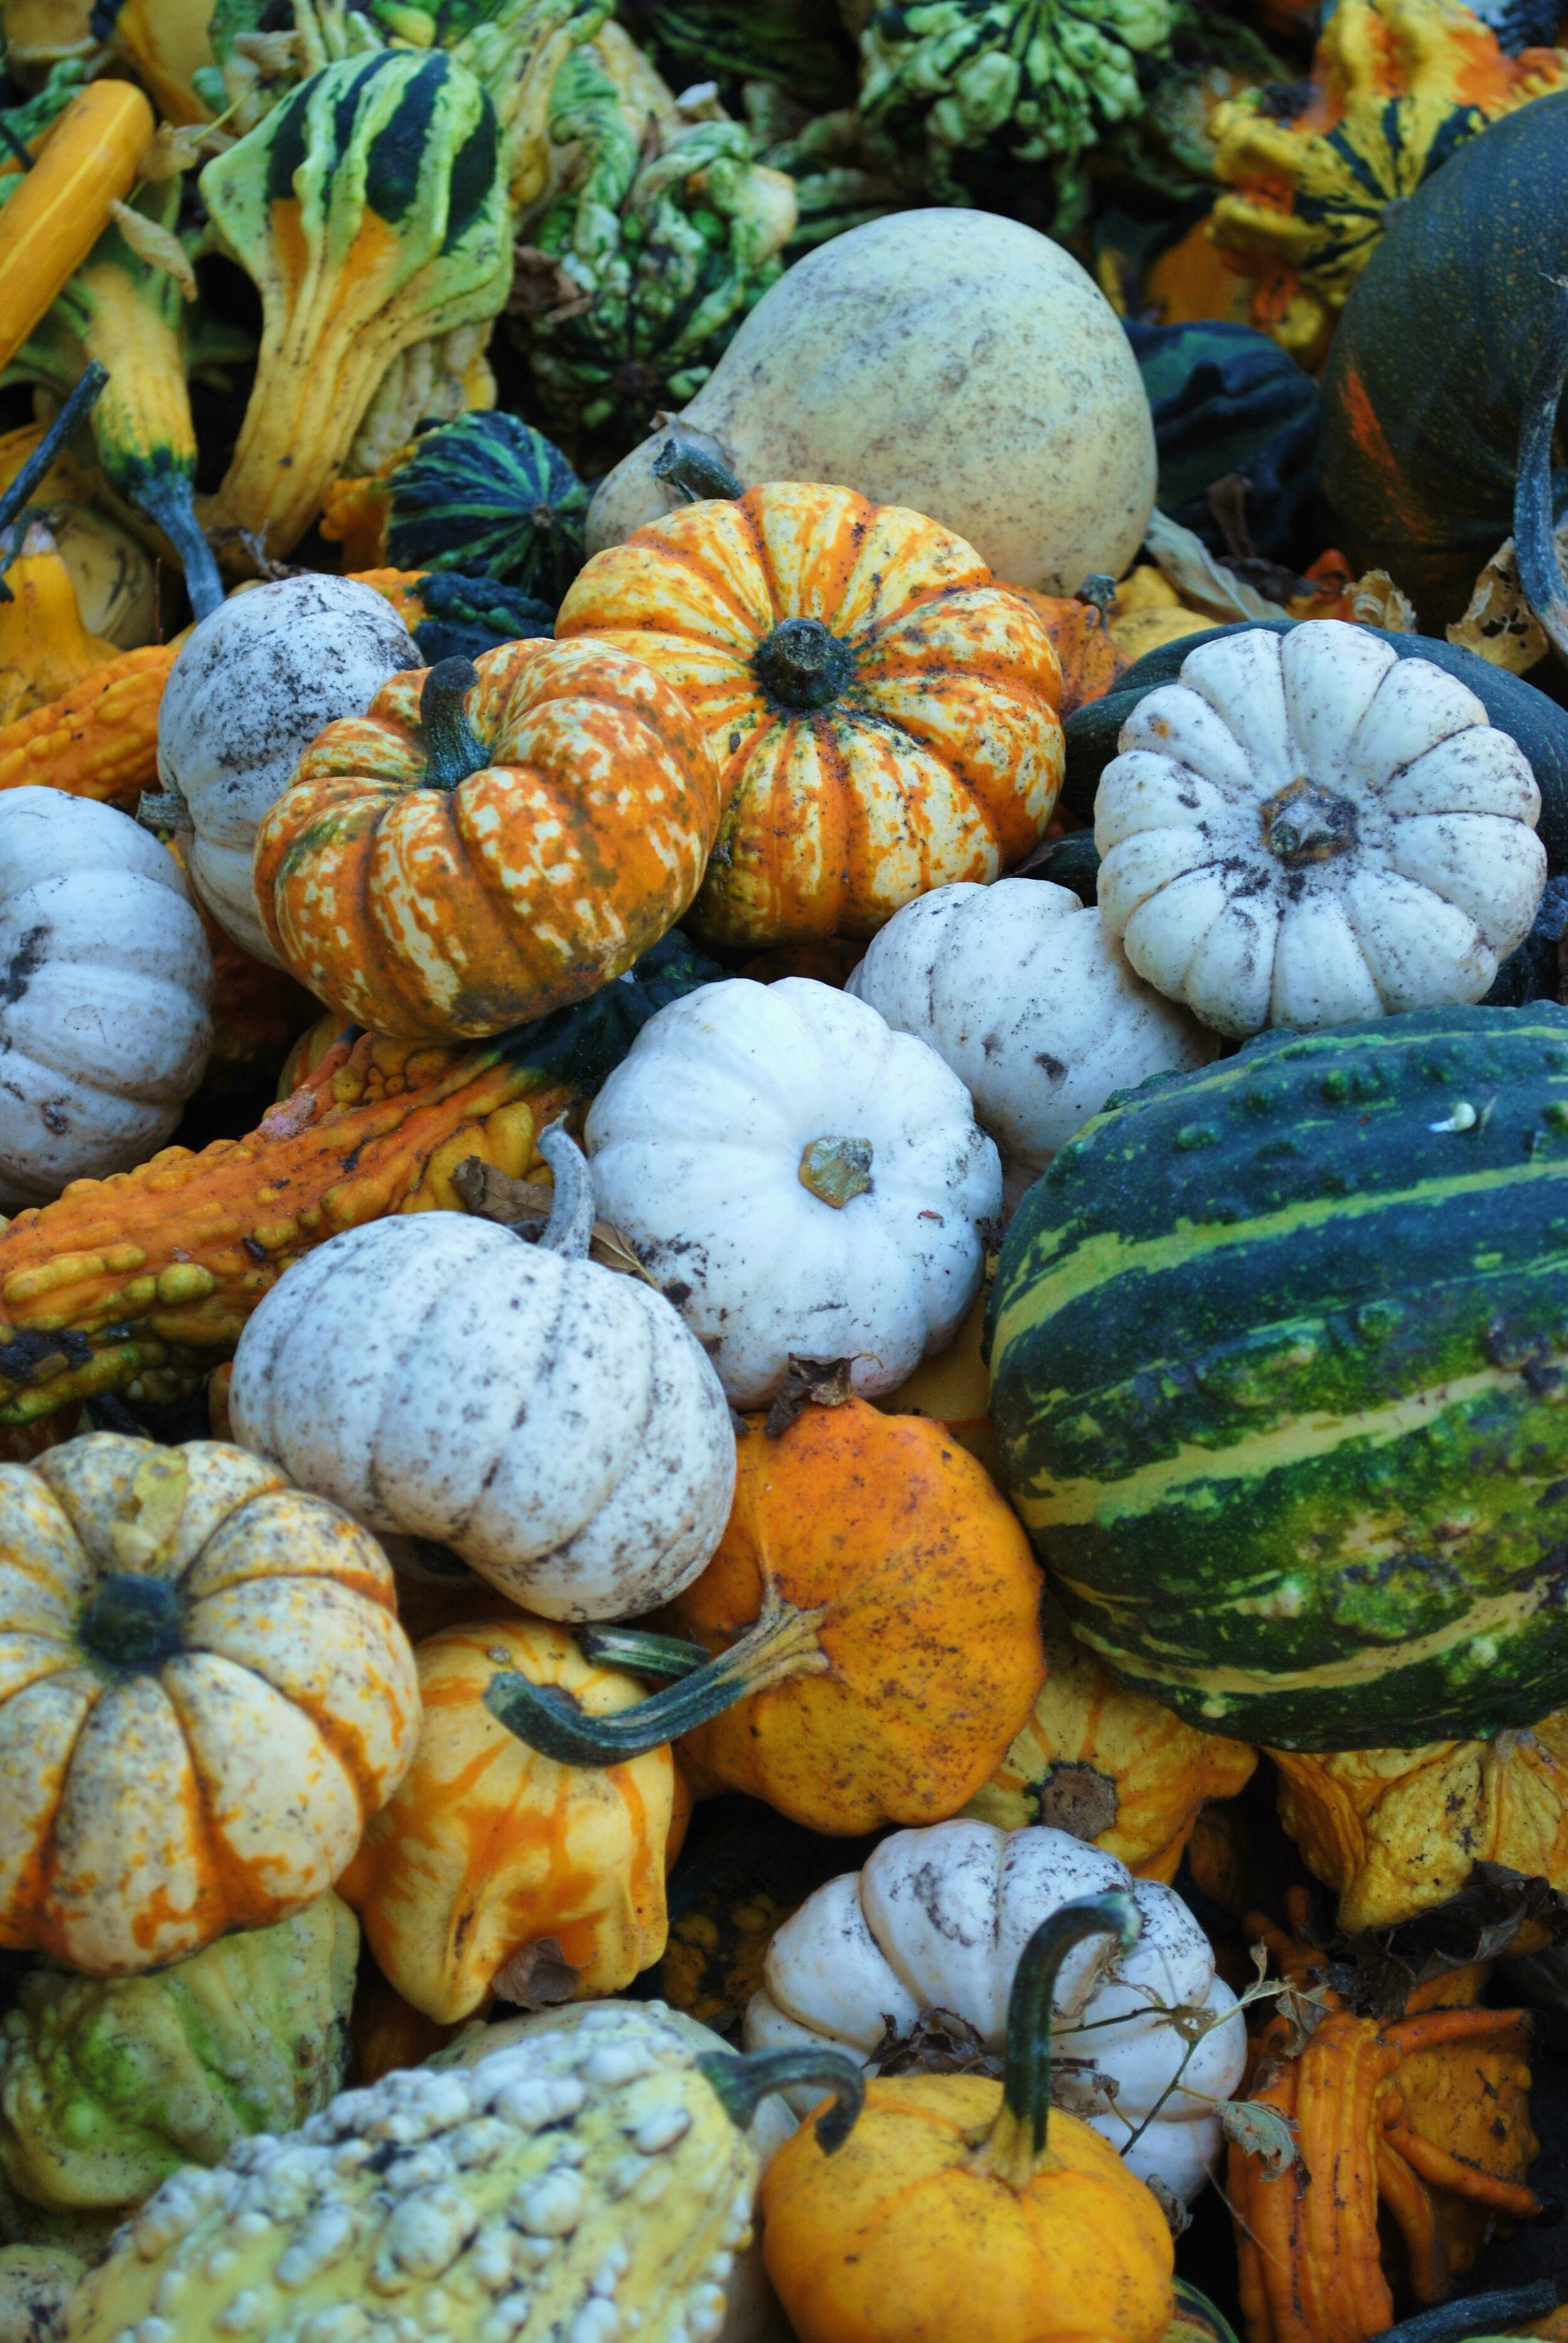 gourds-colorful-fall-harvest-haloween-.jpg